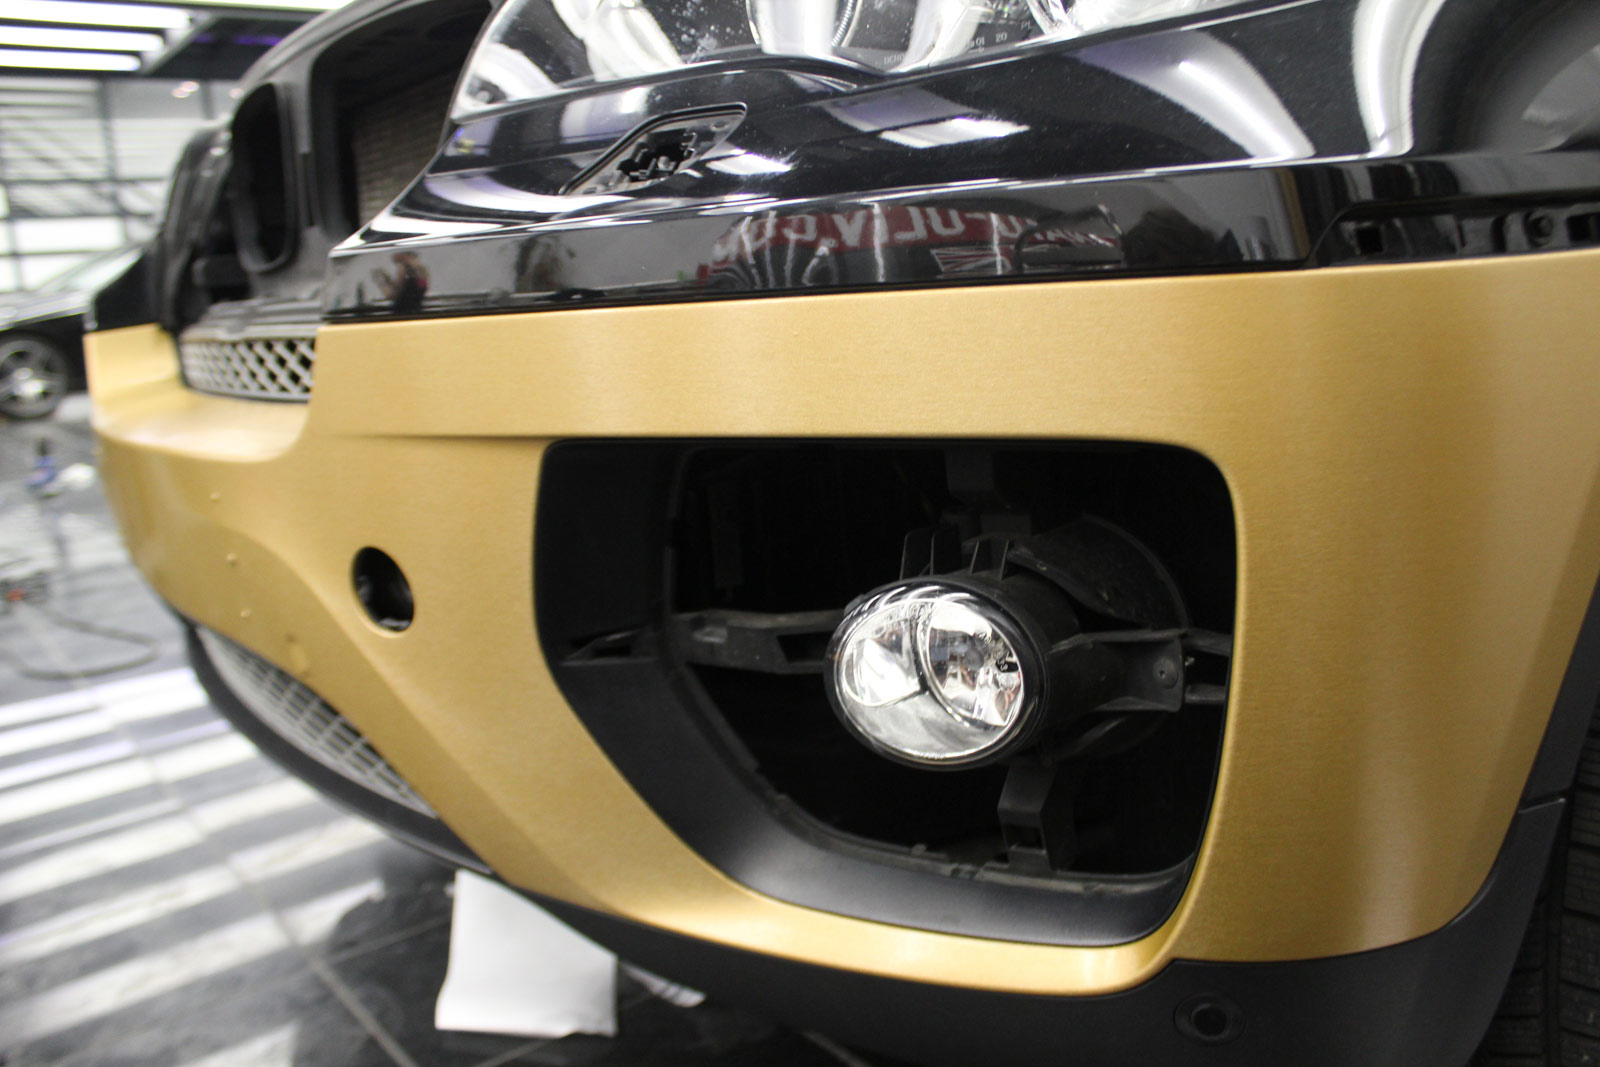 BMW_X6_VERKLEBUNG_BRUSHED_GOLD_15